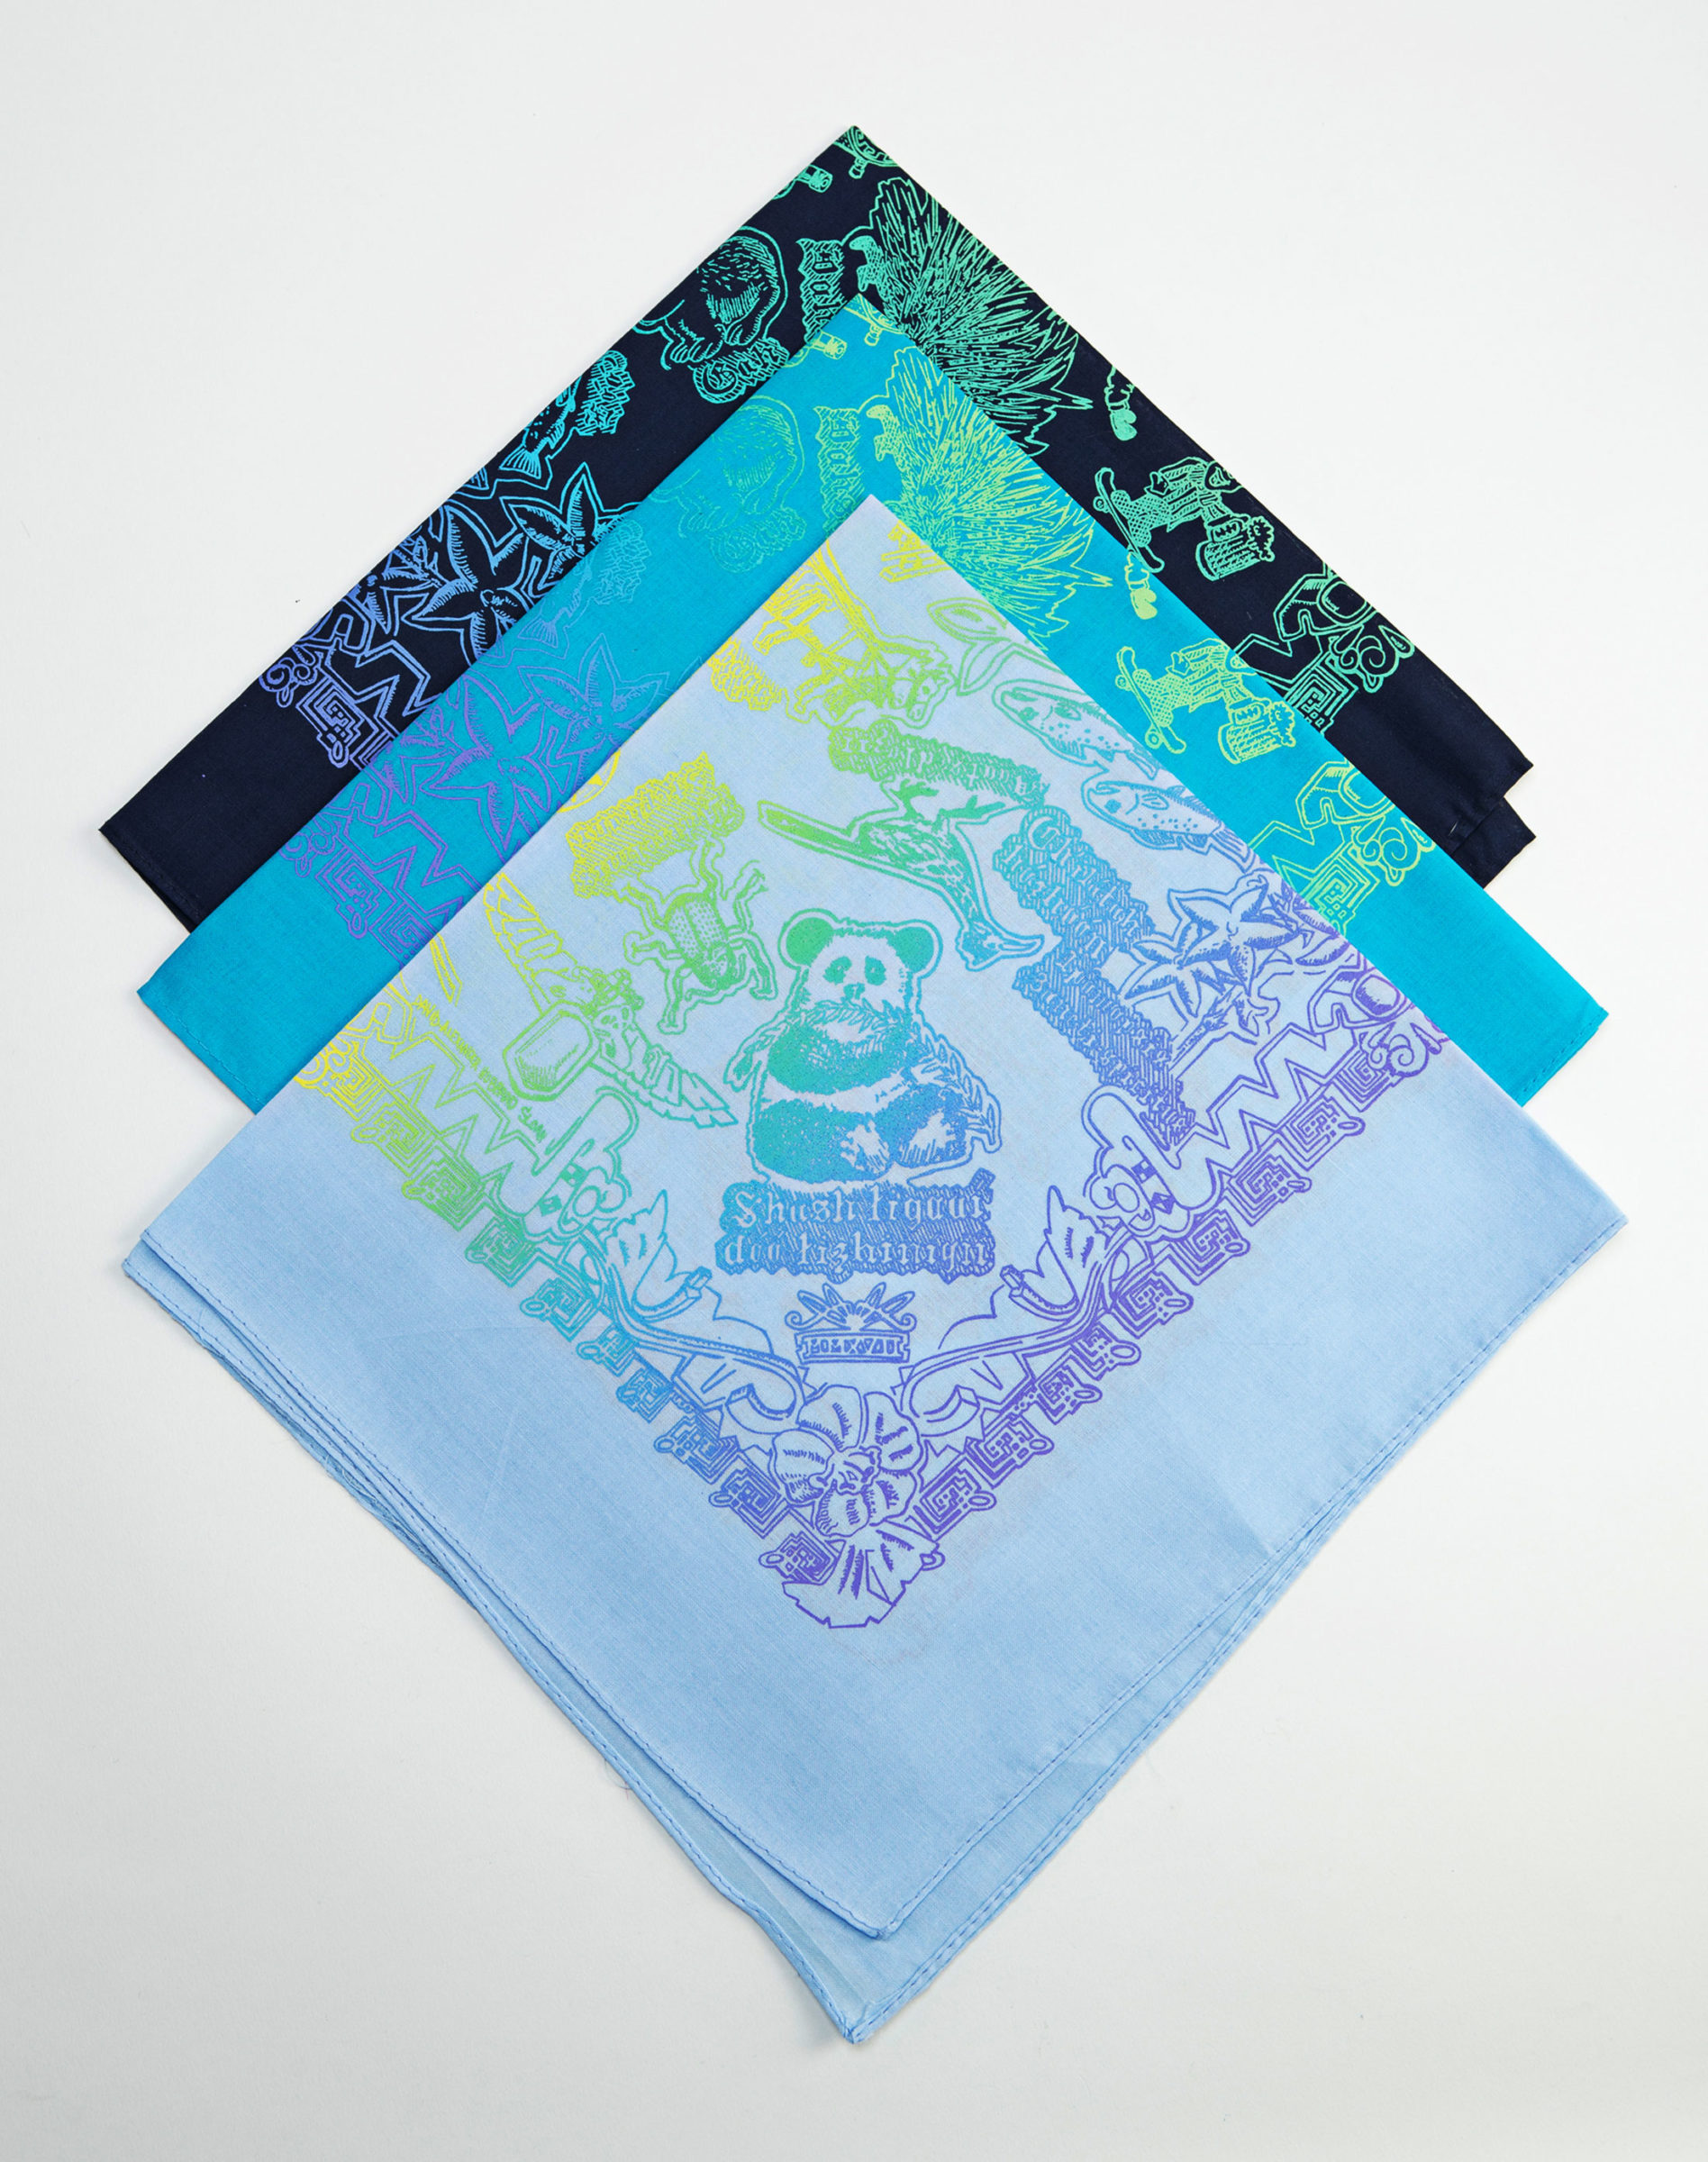 David_Sloan_Bandana_Bundle_Meow_Wolf